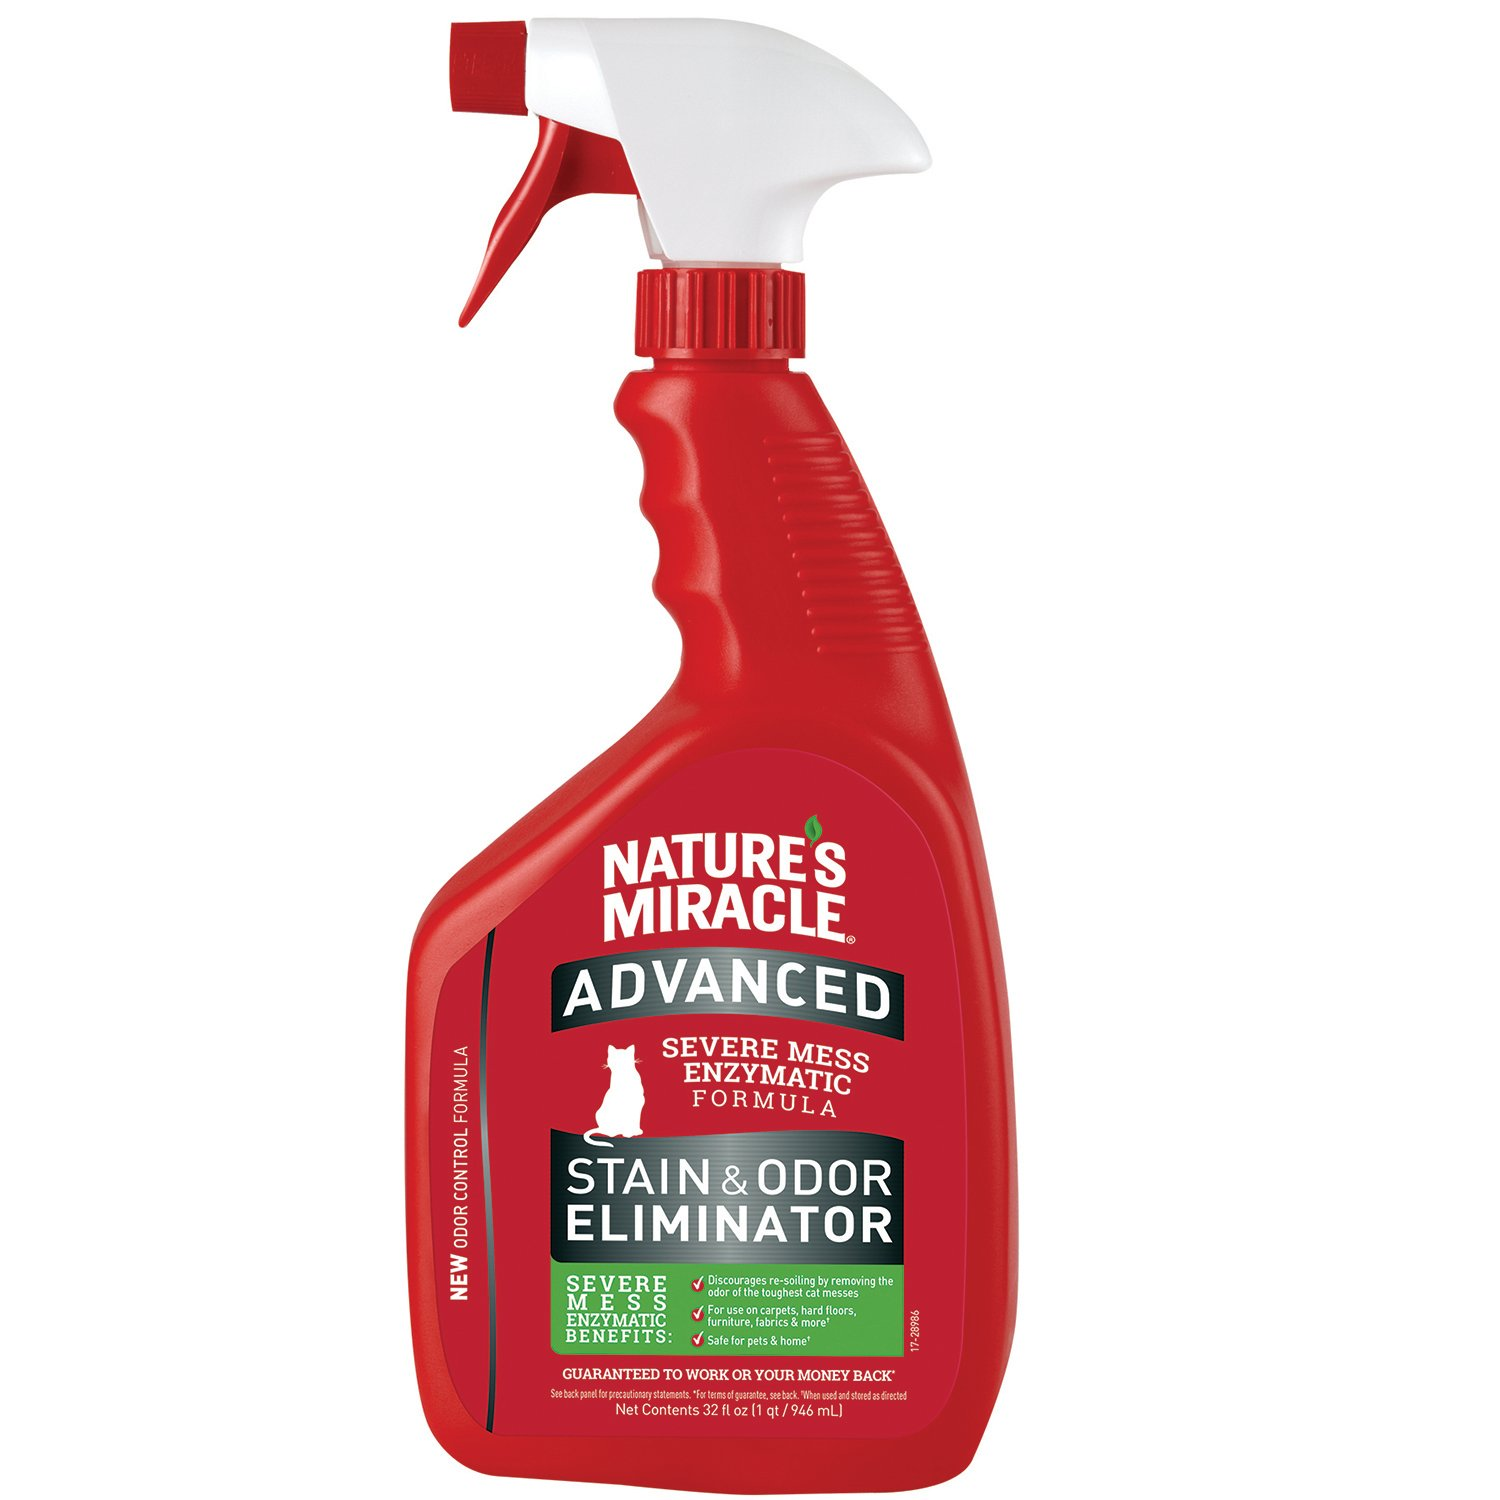 Nature's Miracle Advanced Stain and Odor Eliminator Cat, For Severe Cat Messes by Nature's Miracle